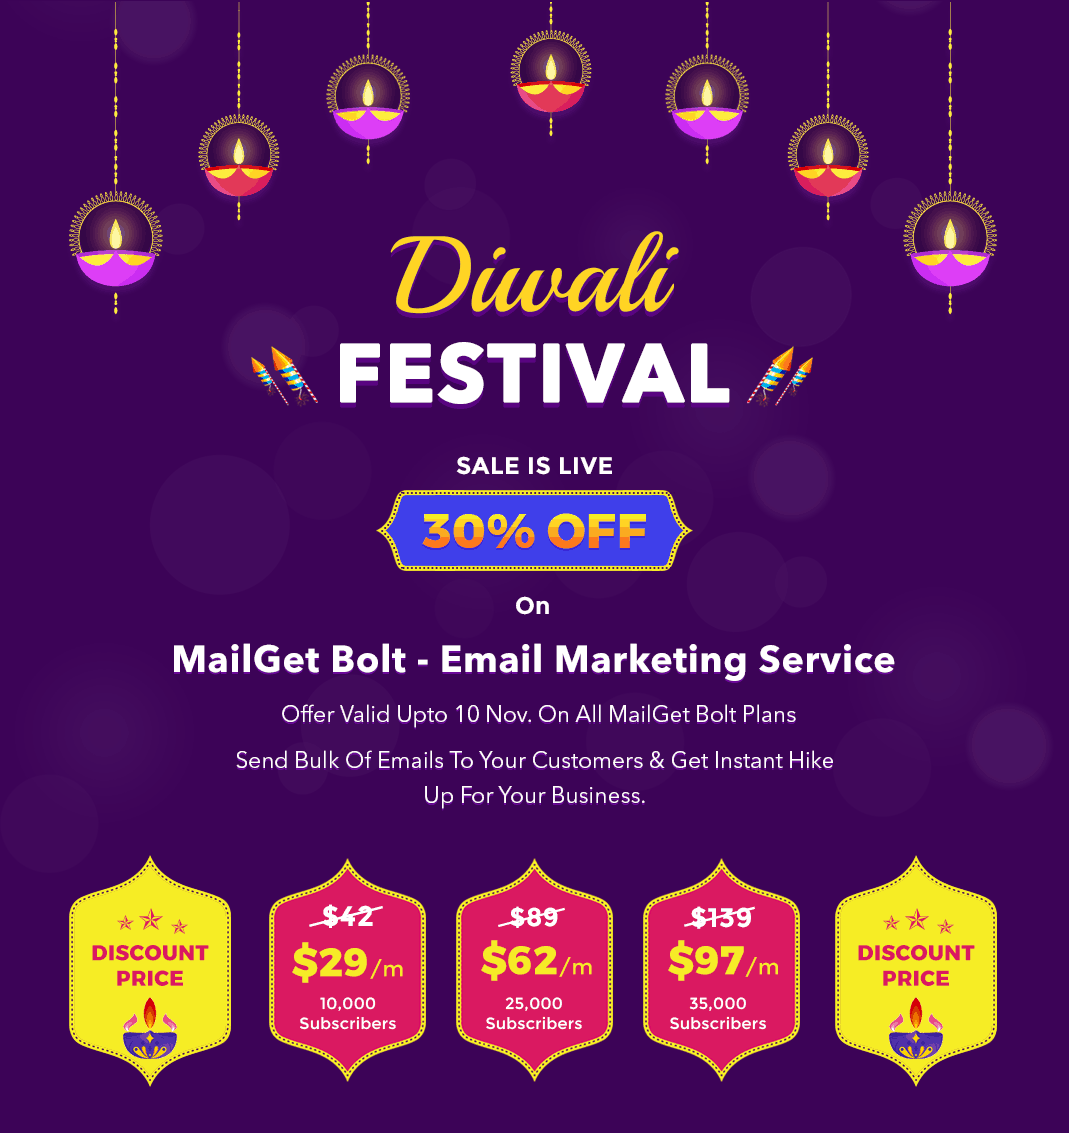 Mailget bolt diwali offer image